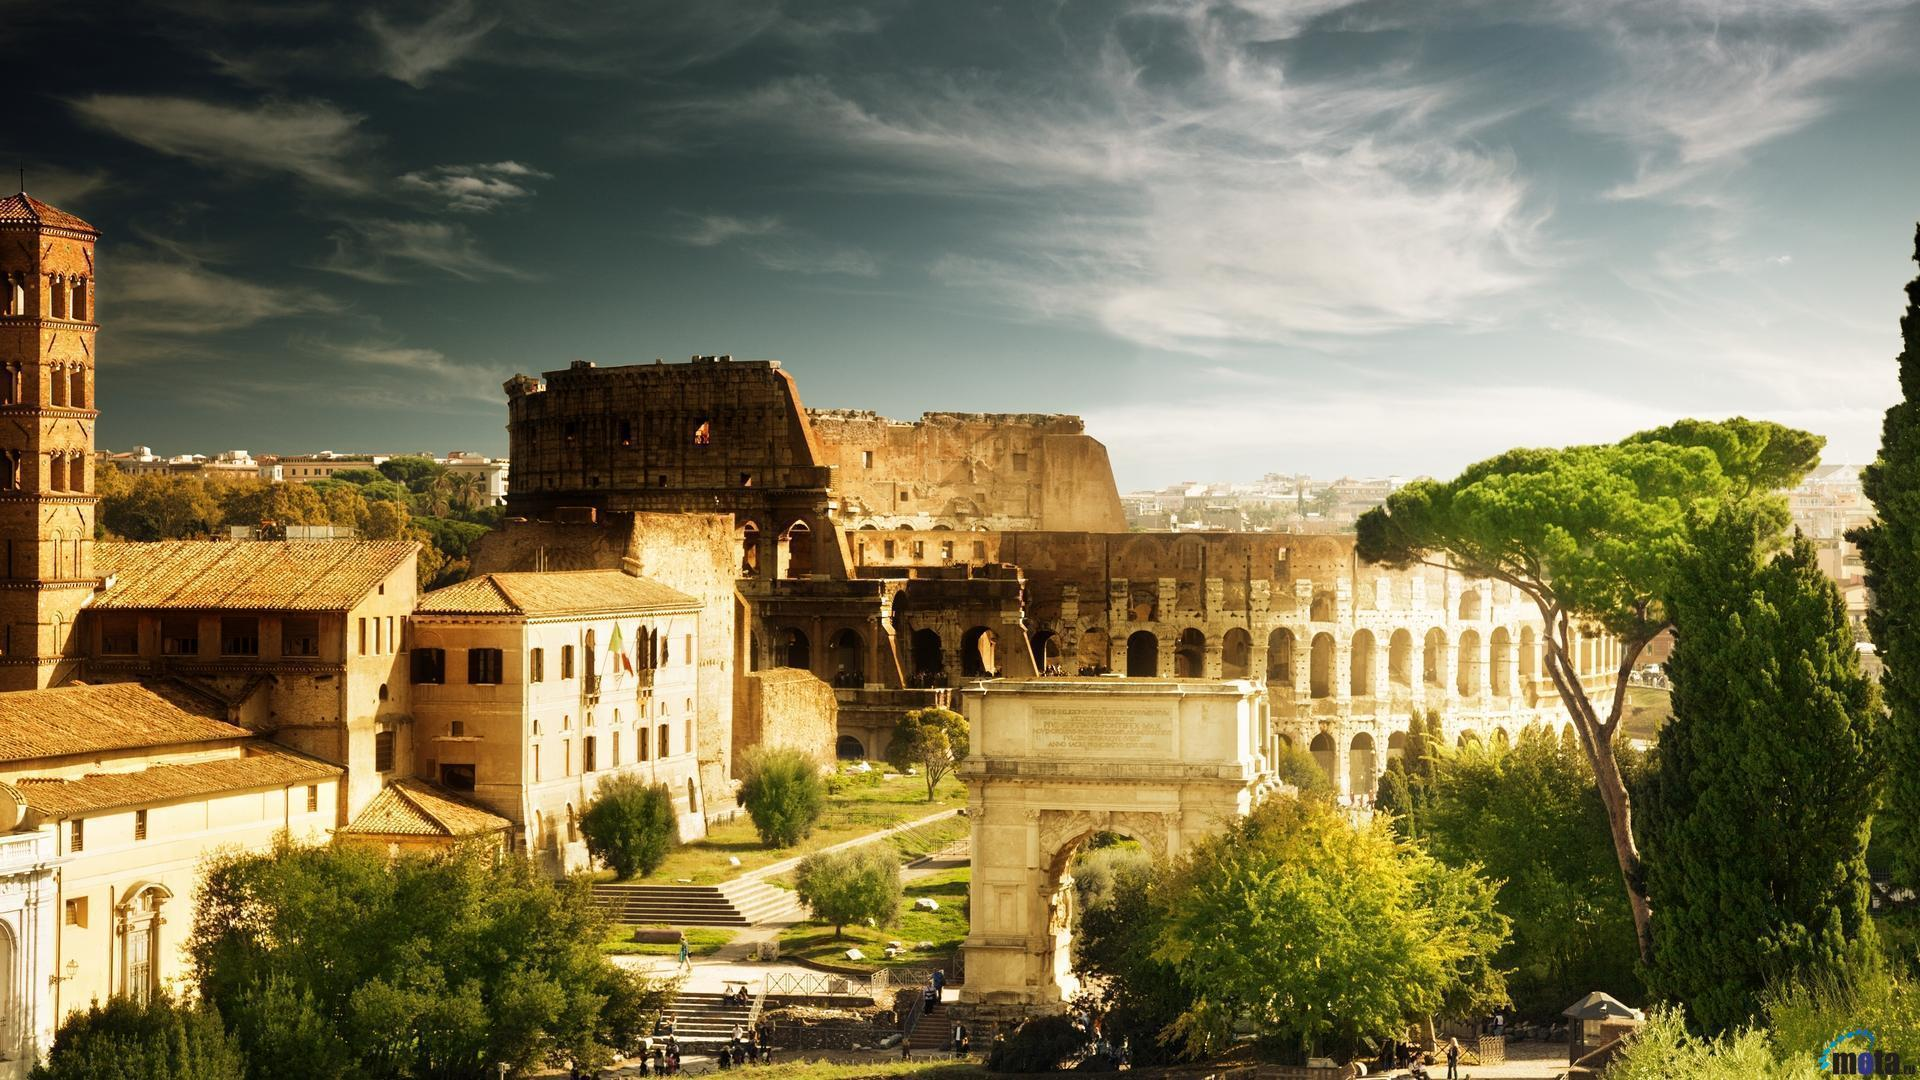 Ancient rome wallpapers wallpaper cave Hd home me